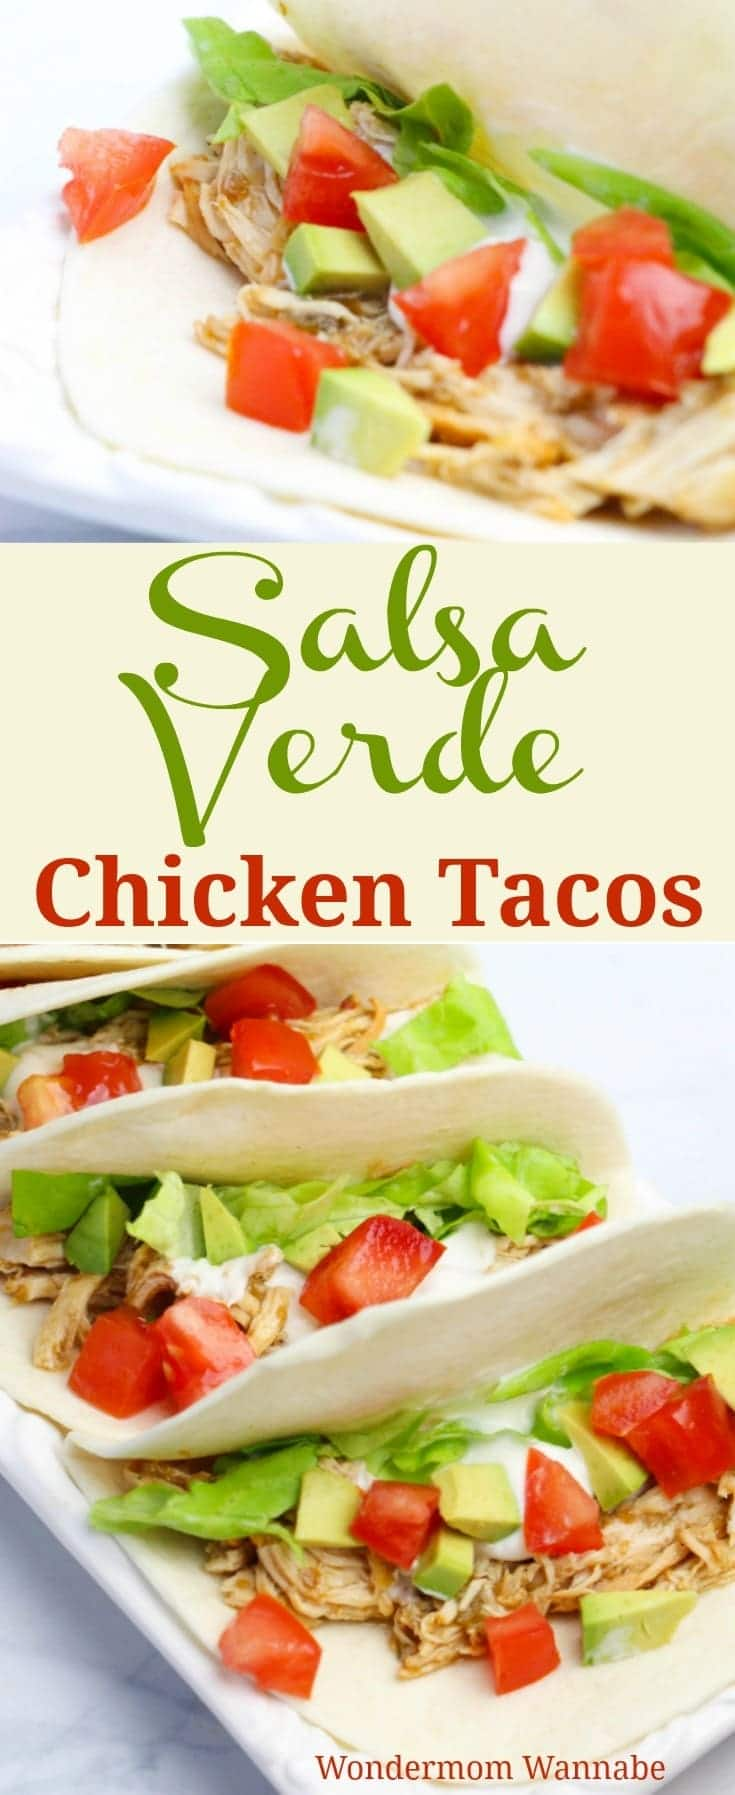 These Salsa Verde Chicken Tacos are so delicious and ridiculously easy to make in an Instant Pot or slow cooker.